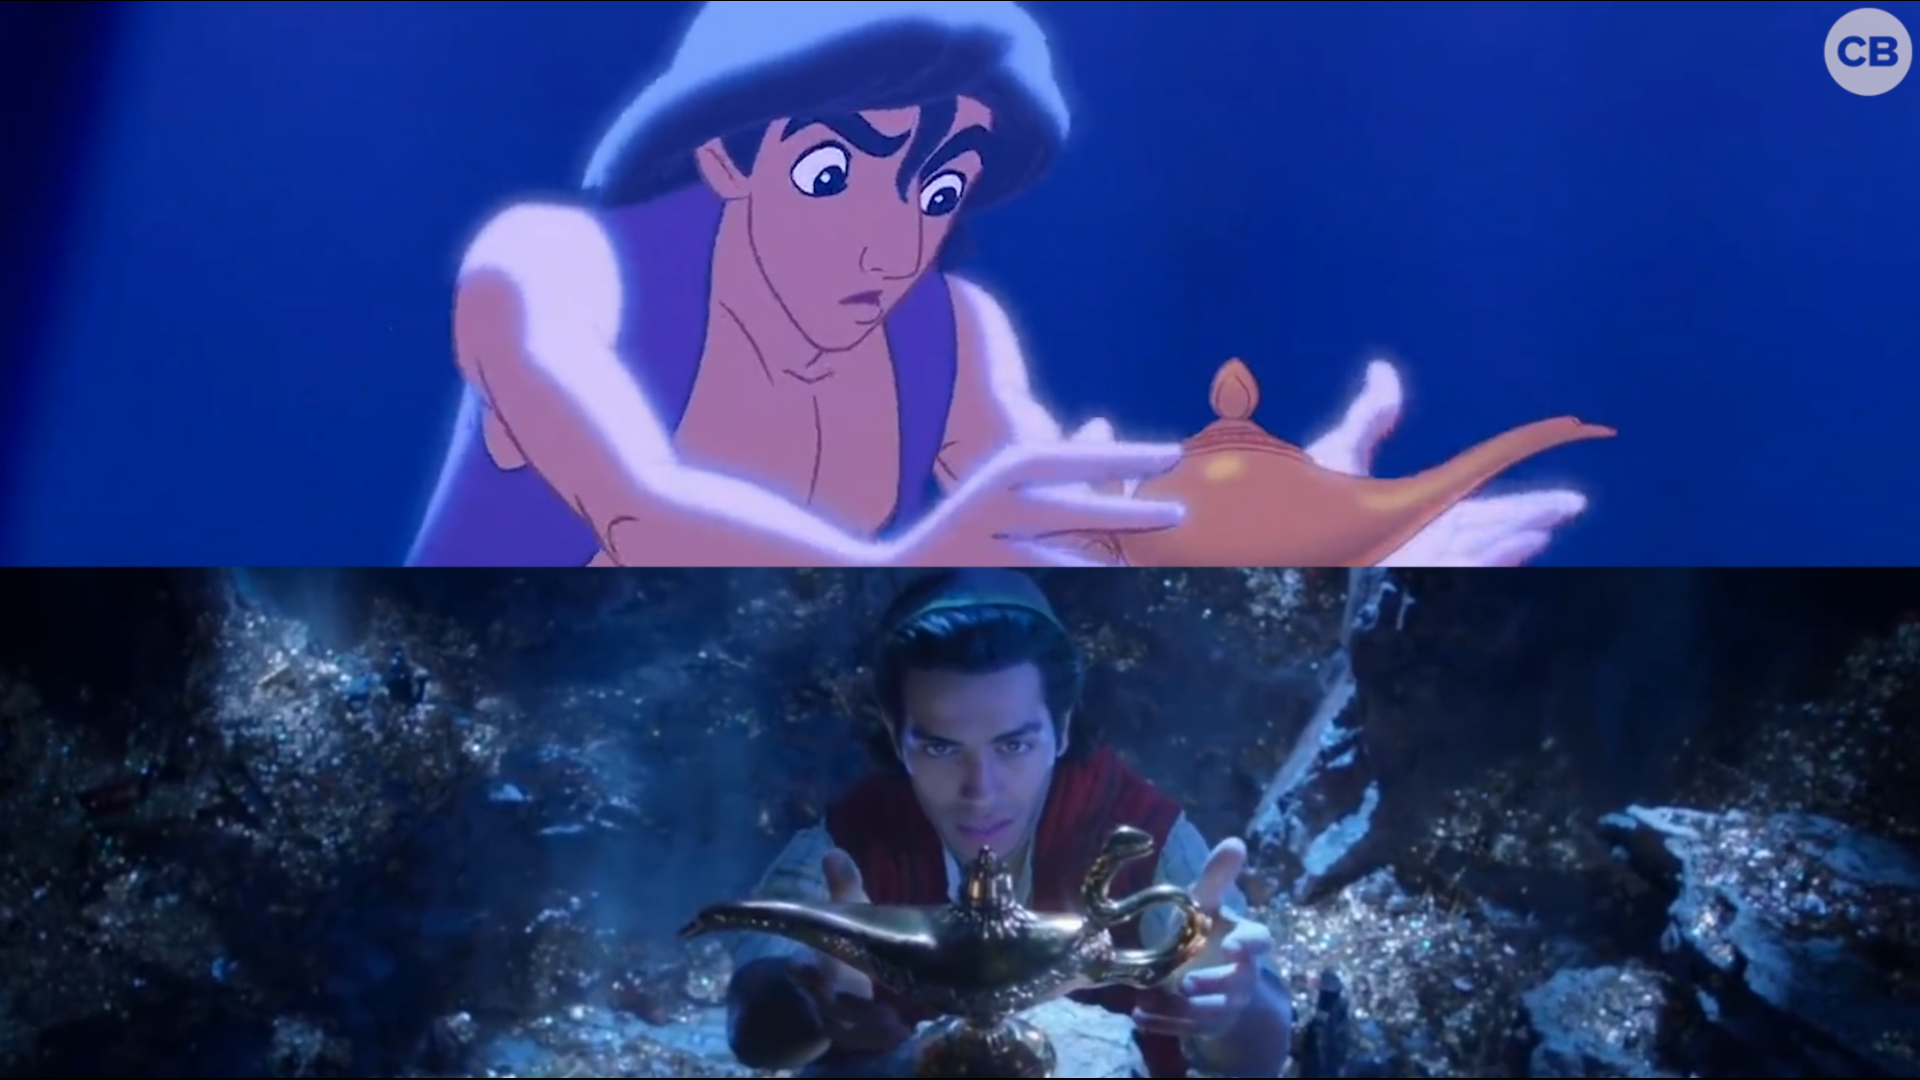 NEW 'Aladdin' Teaser vs. Original screen capture